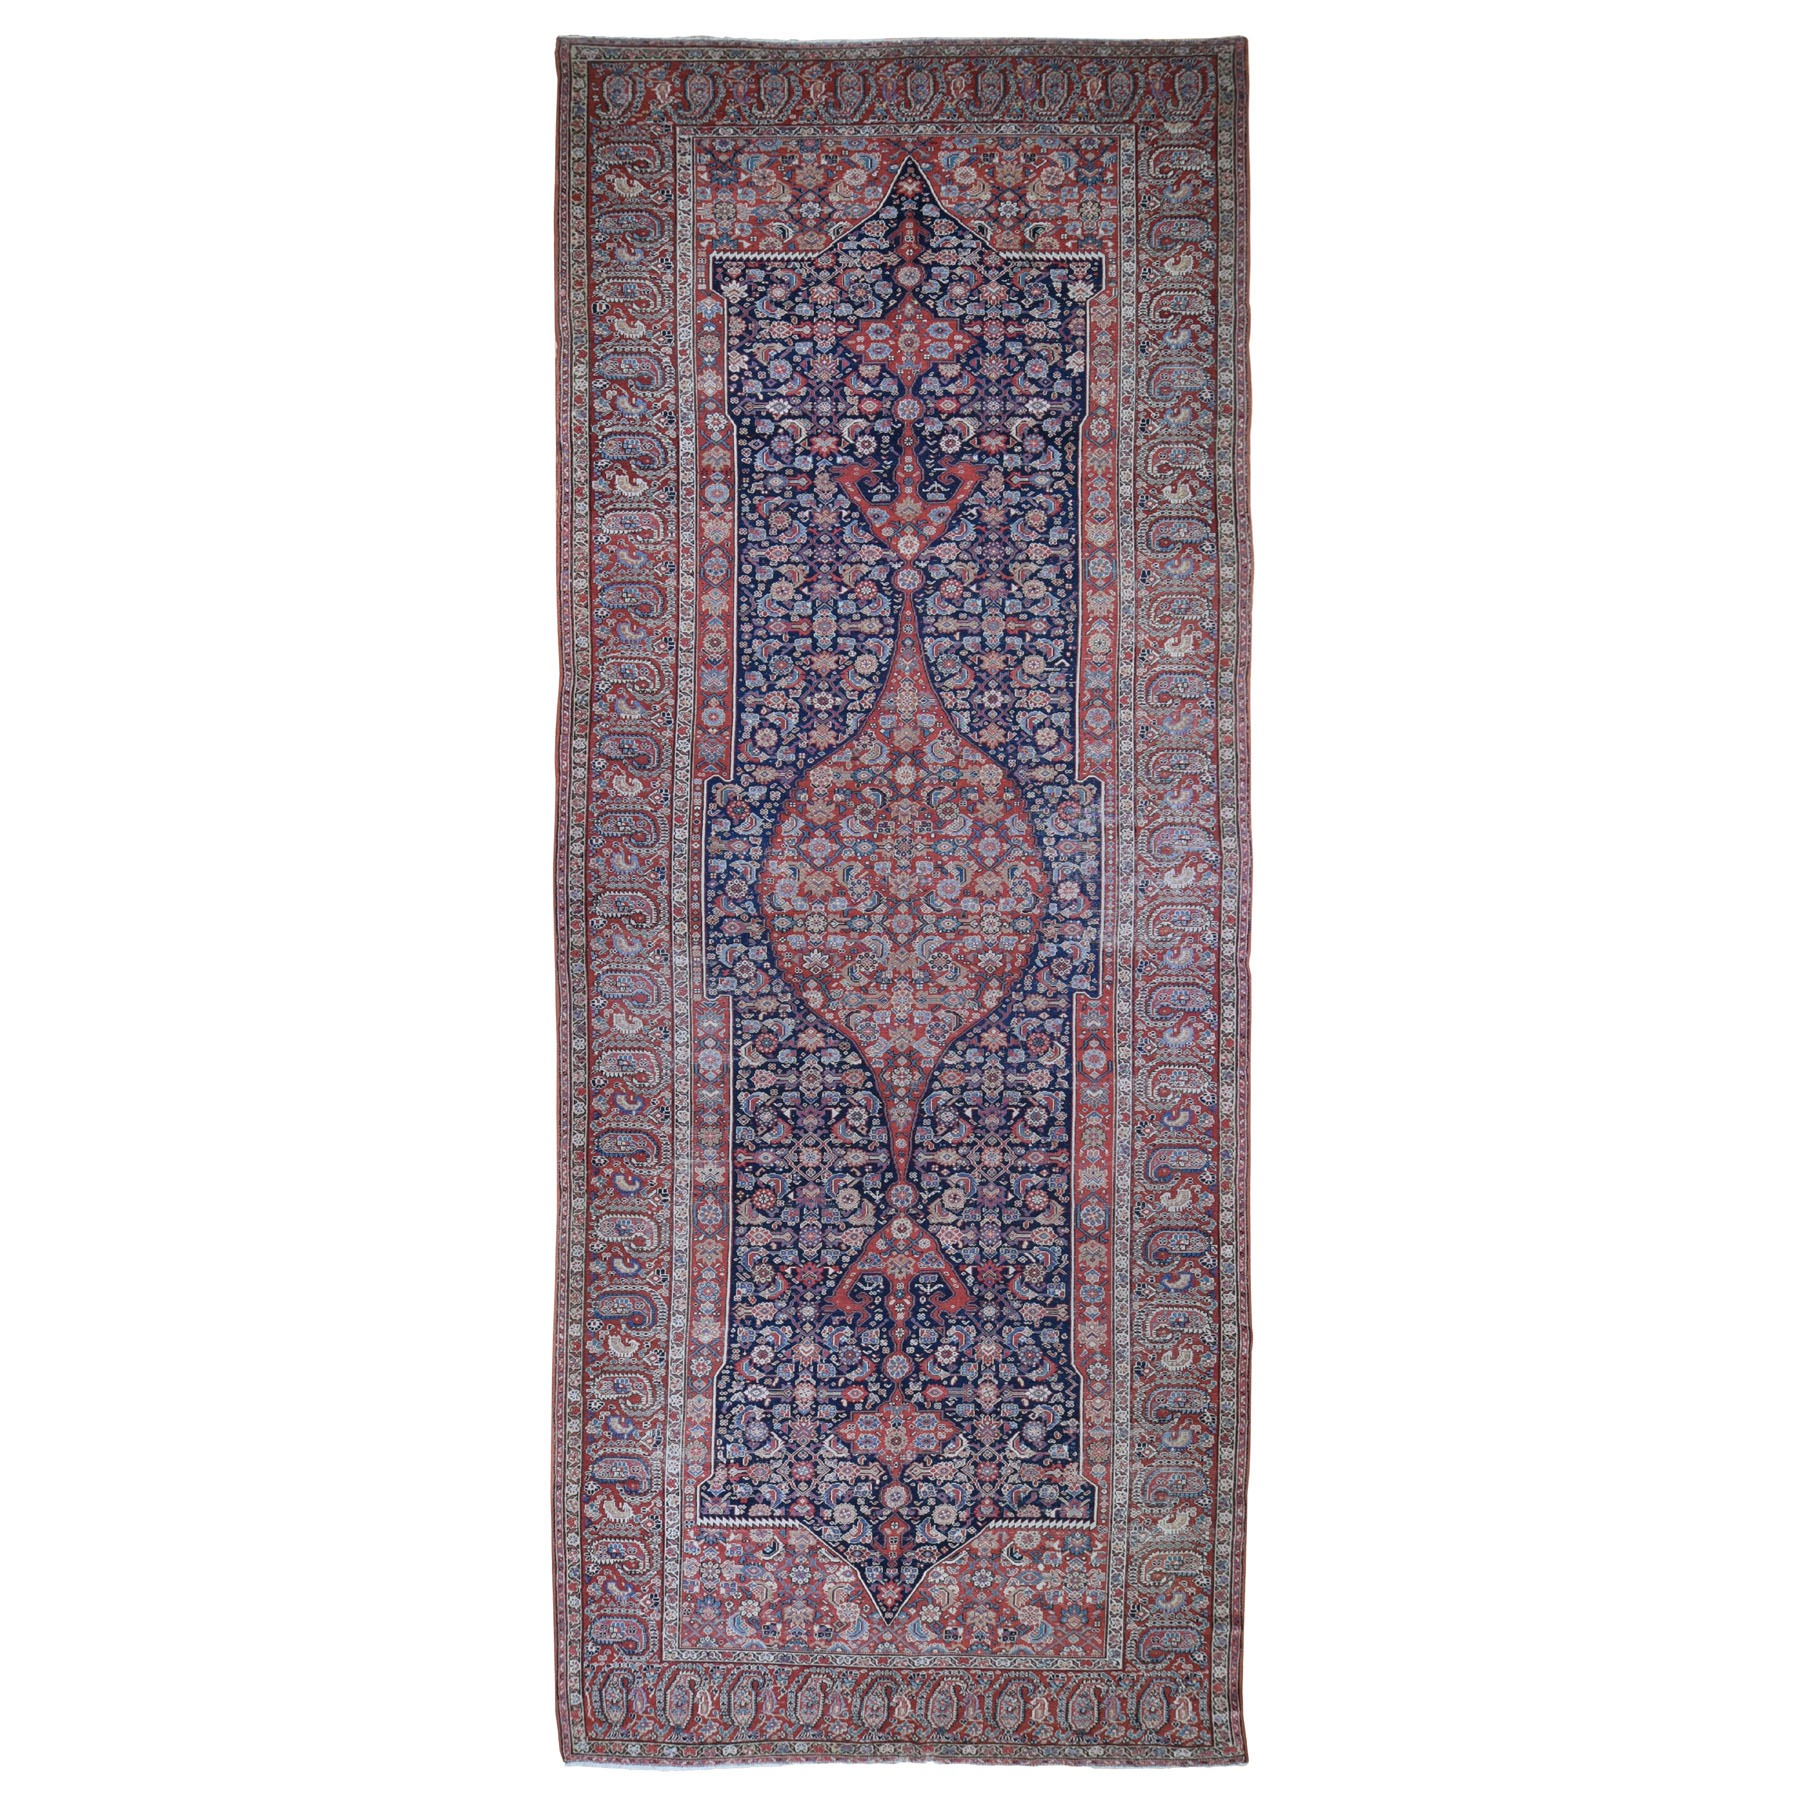 "6'10""x20'9"" Gallery Size Antique Persian Malayer Evern Wear Medallion Design Pure Wool Hand Knotted Rug"